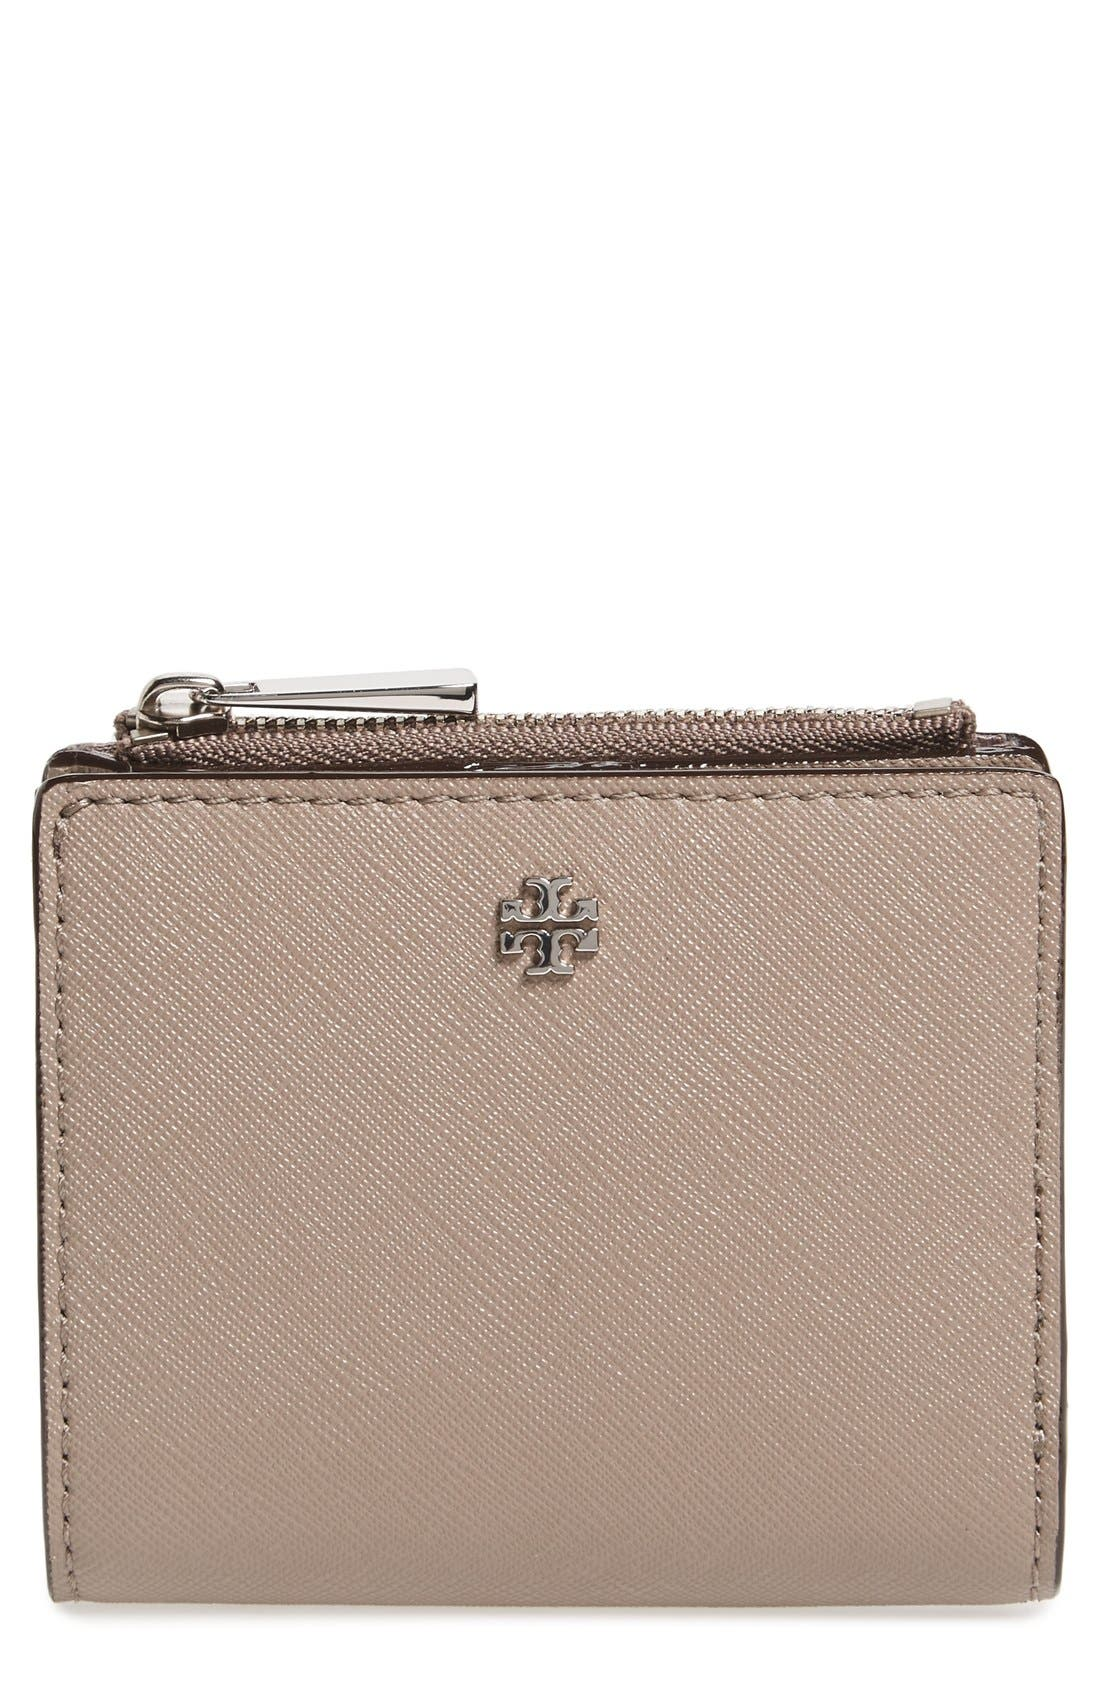 Alternate Image 1 Selected - Tory Burch 'Mini Robinson' Leather Wallet